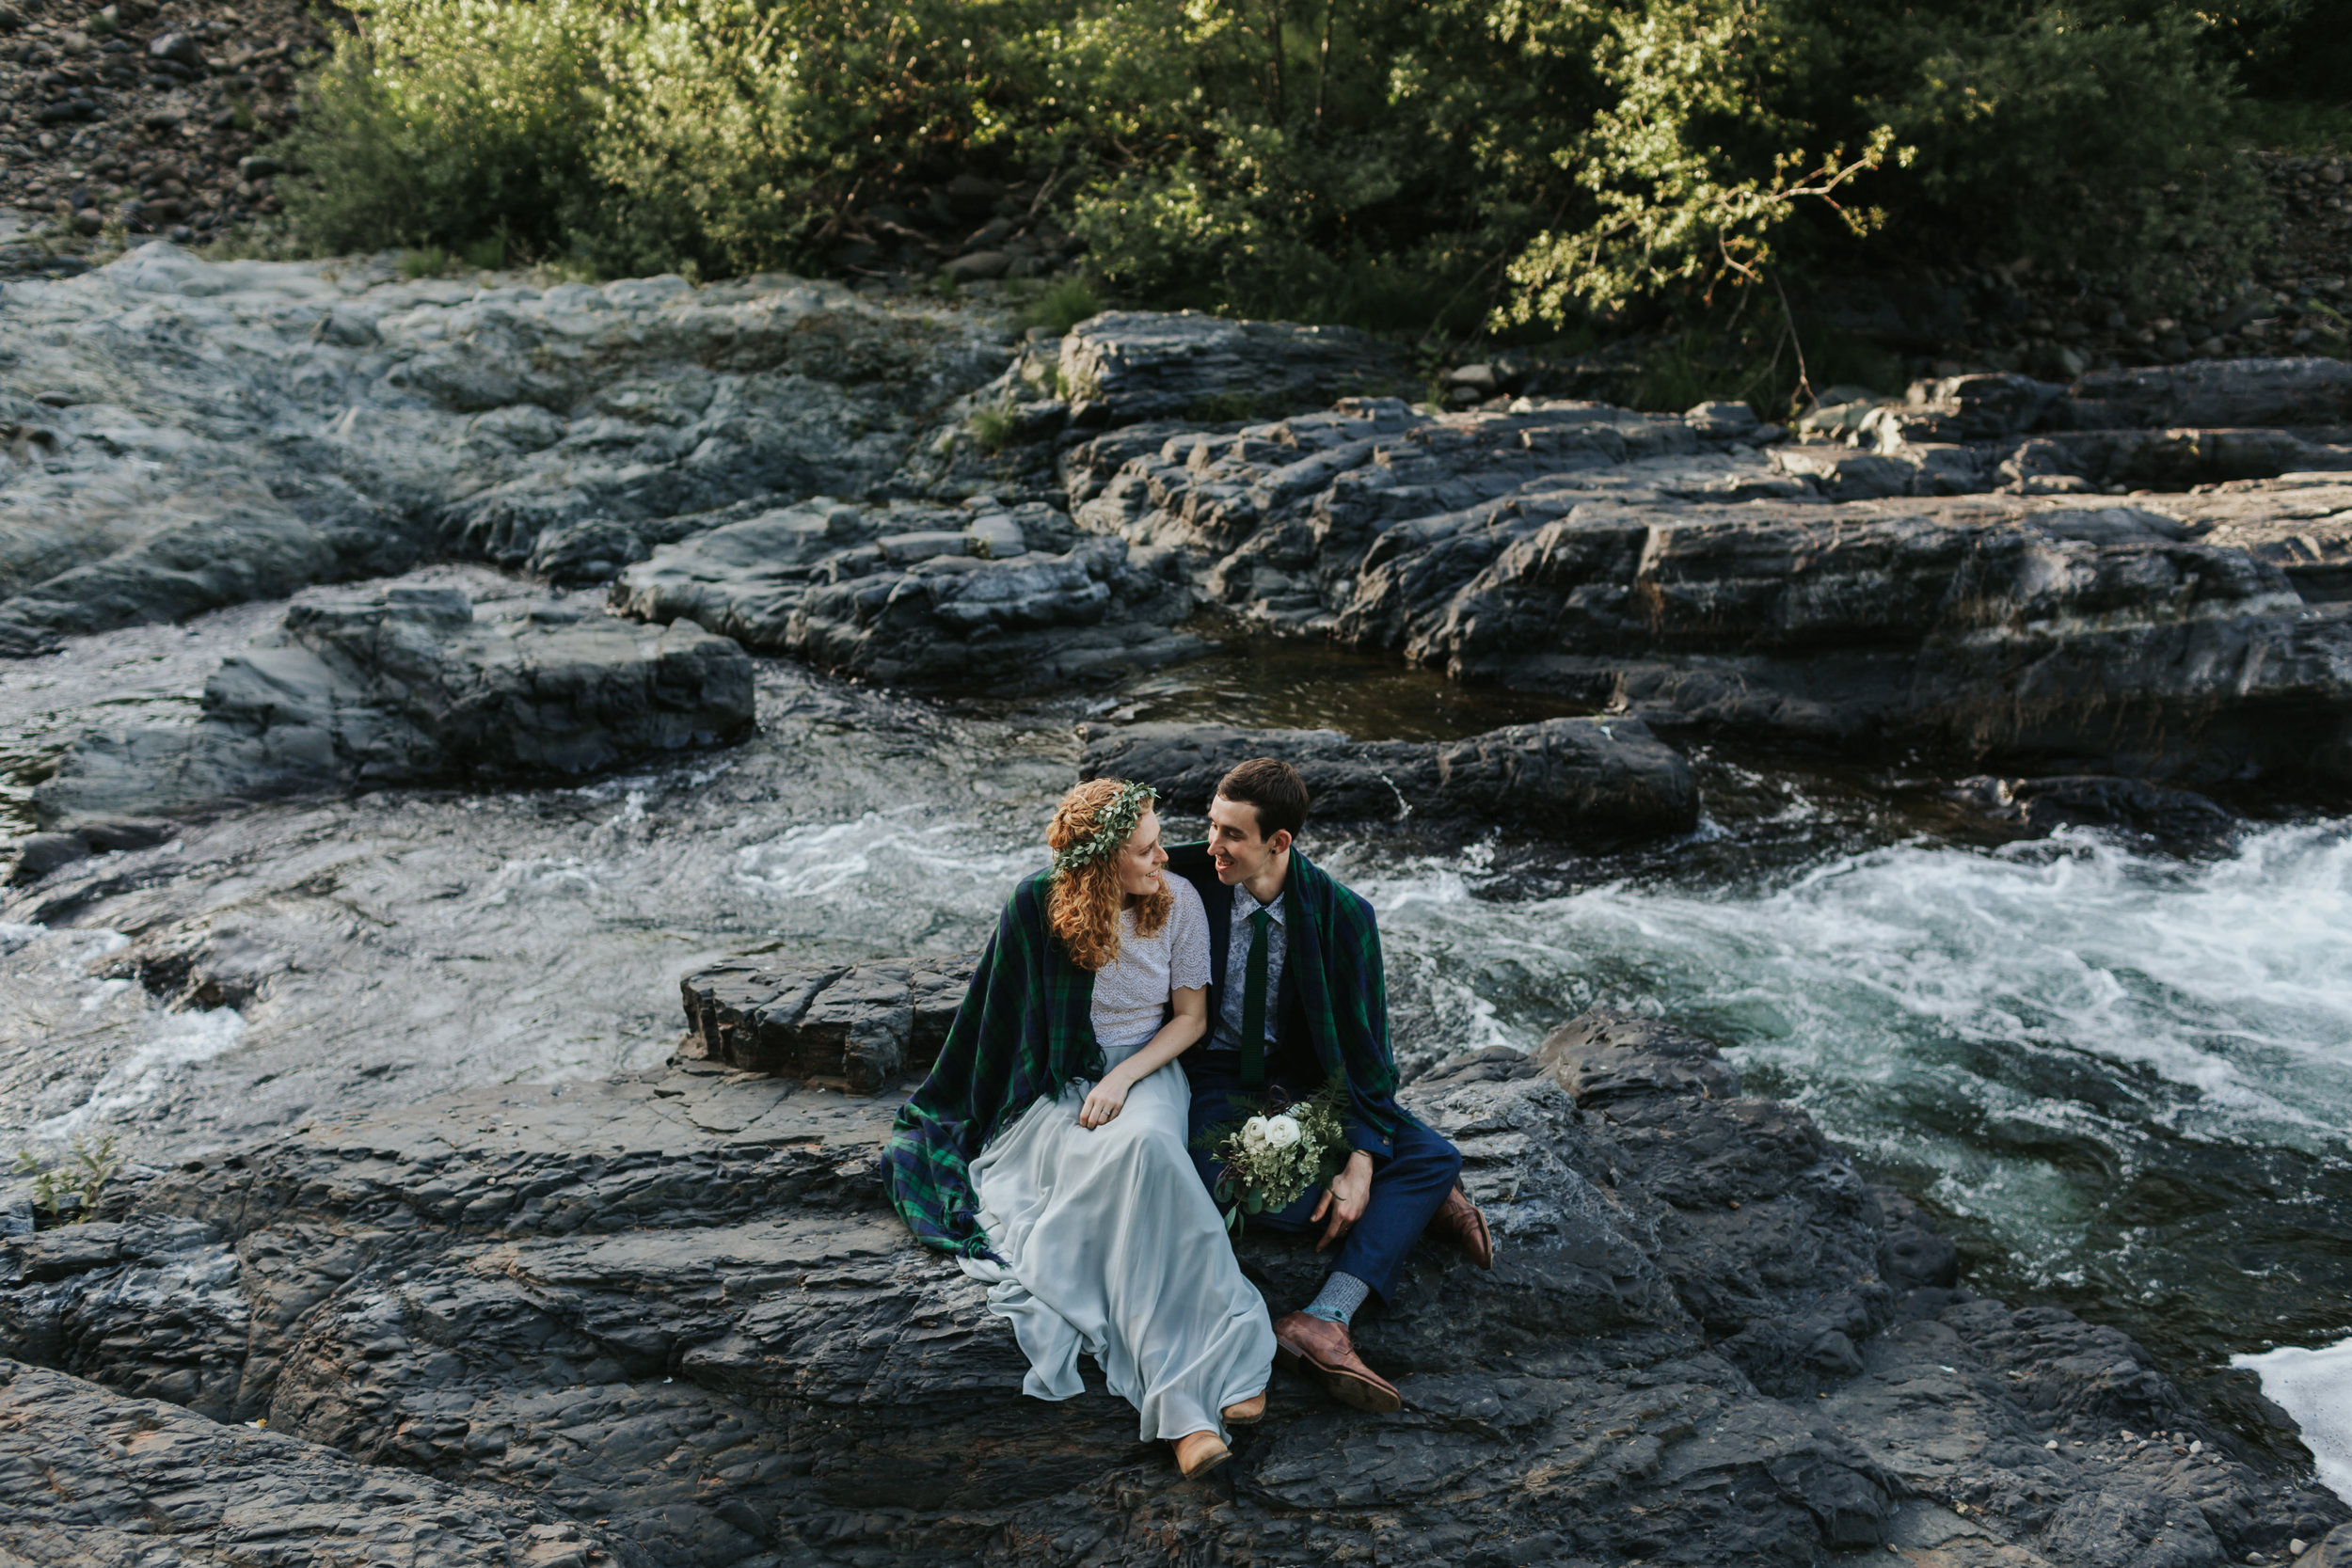 Smith Homestead Forest Wedding - Ragan & Max celebrated a beautiful Summer Solstice wedding in the Tillamook forest. They read their vows by the rushing river in front of their nearest & dearest.Read More